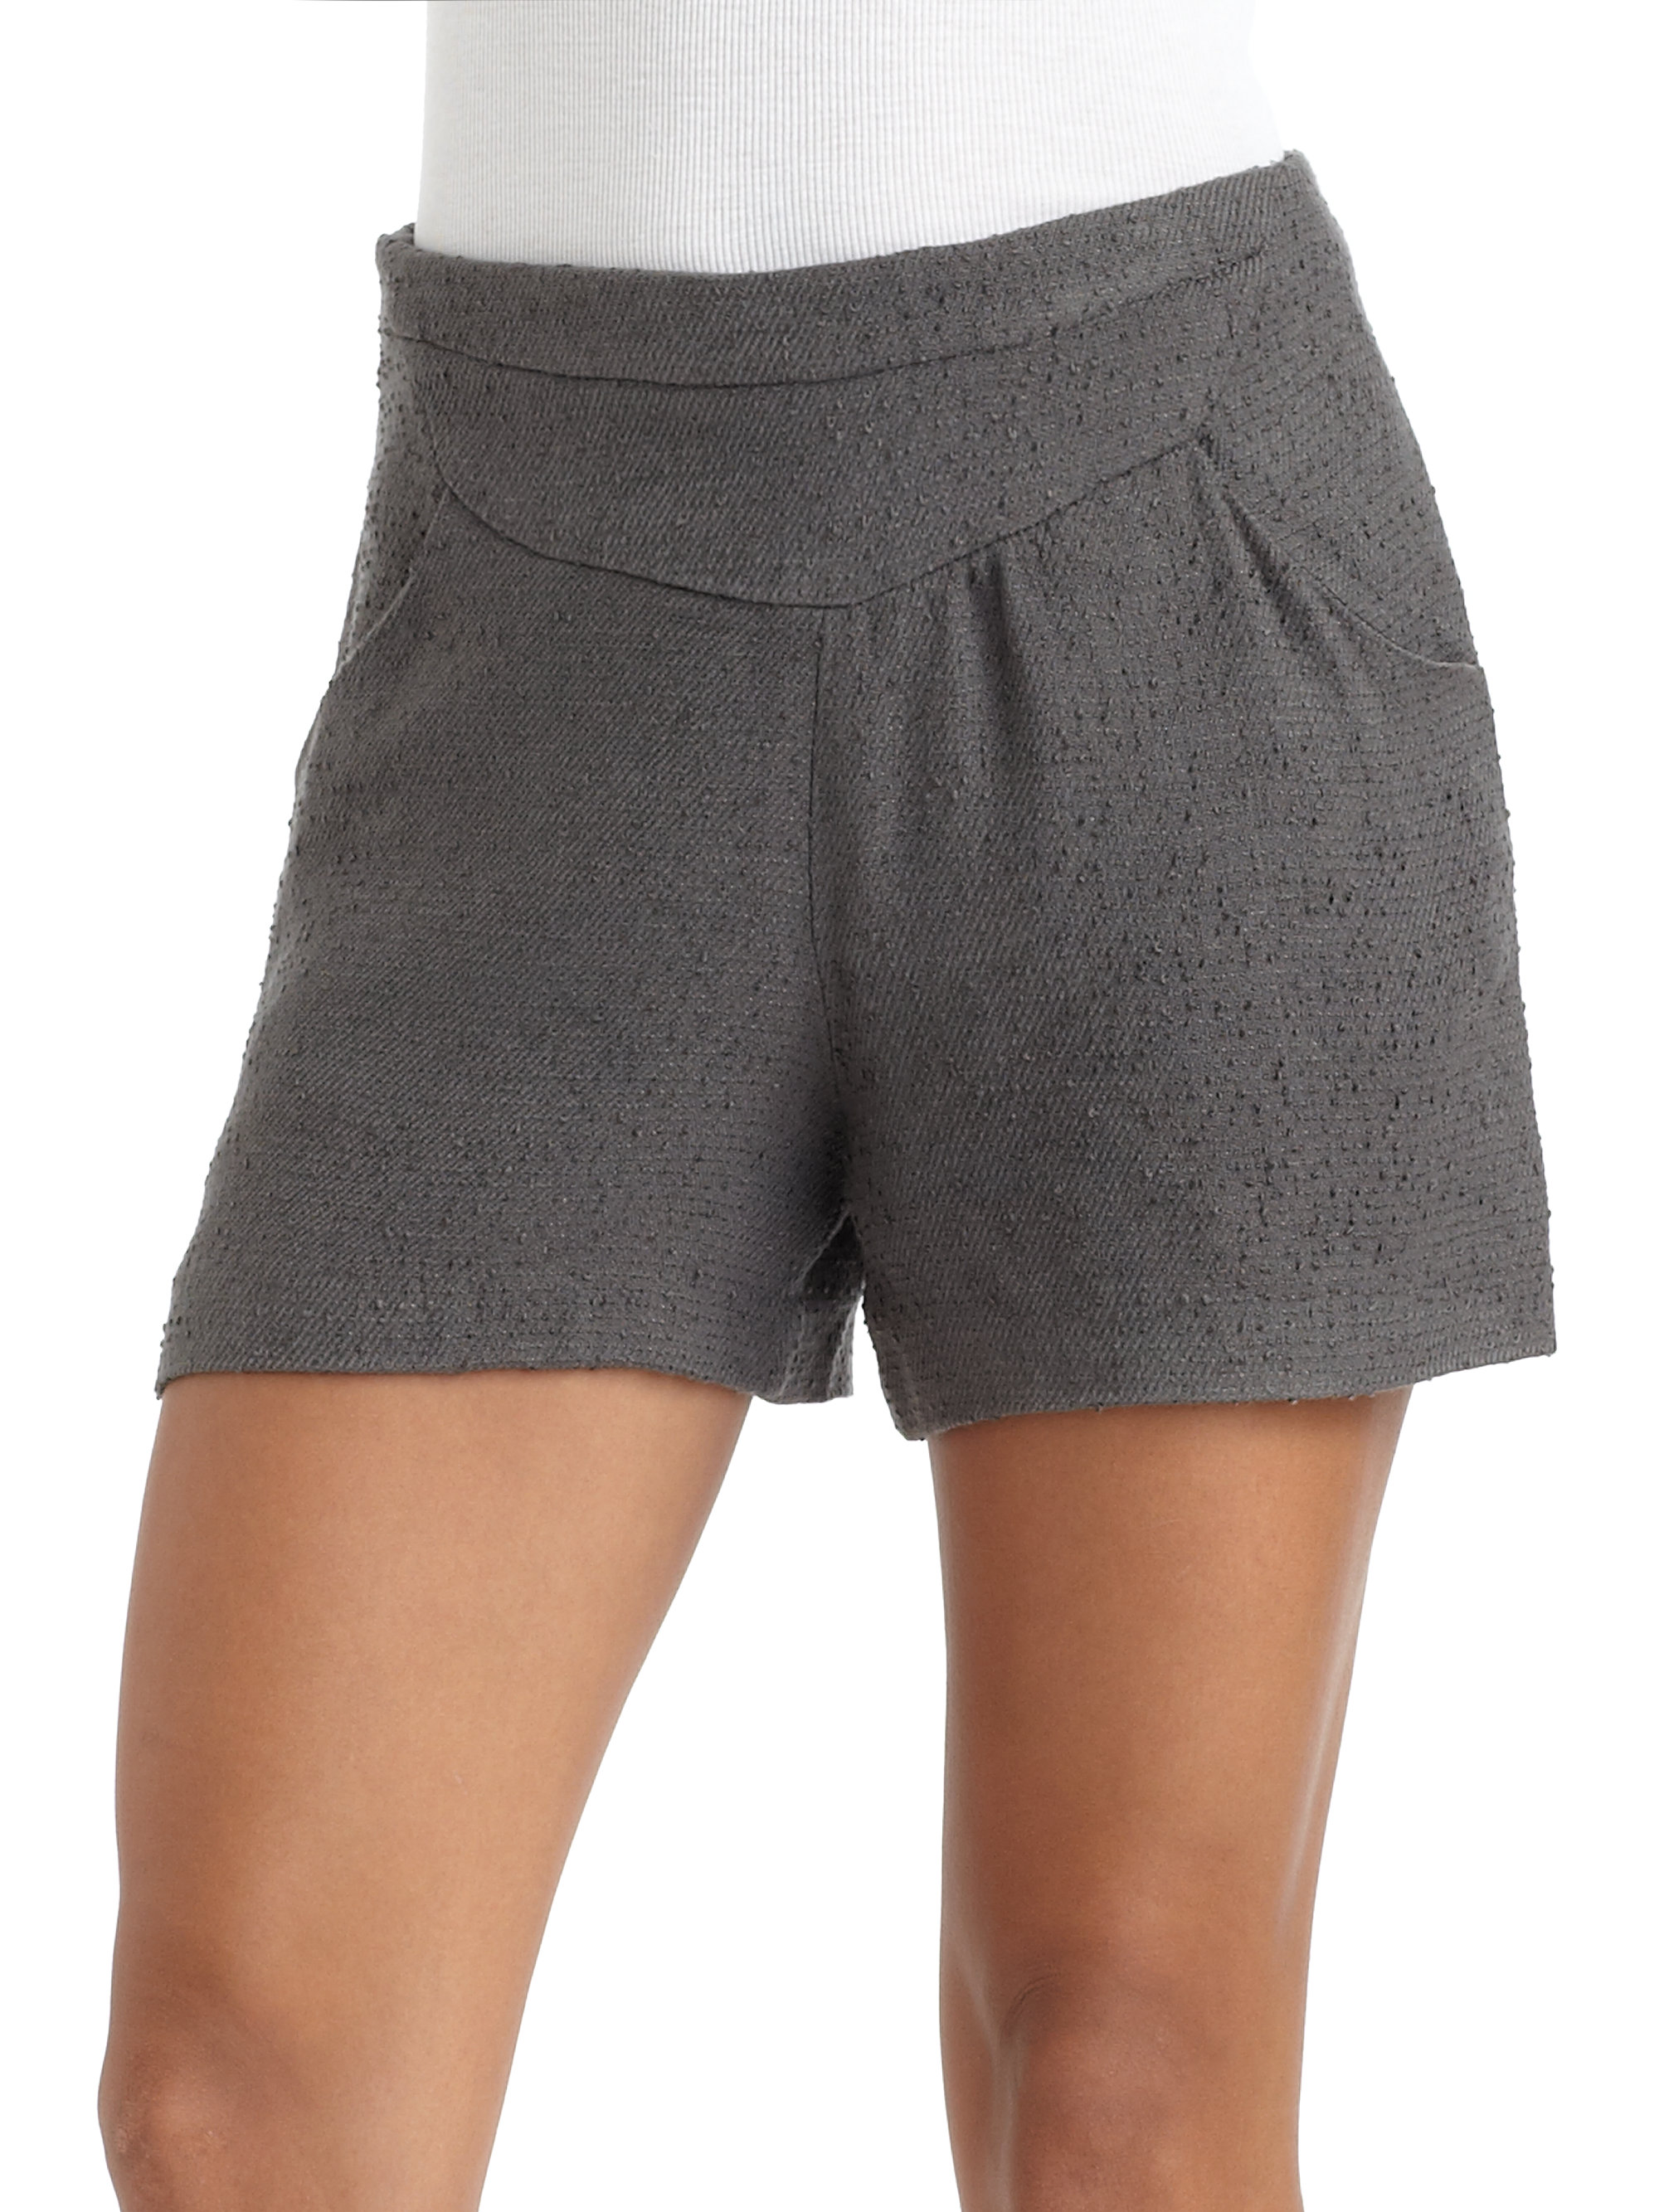 W118 by walter baker High-waisted Shorts in Gray   Lyst